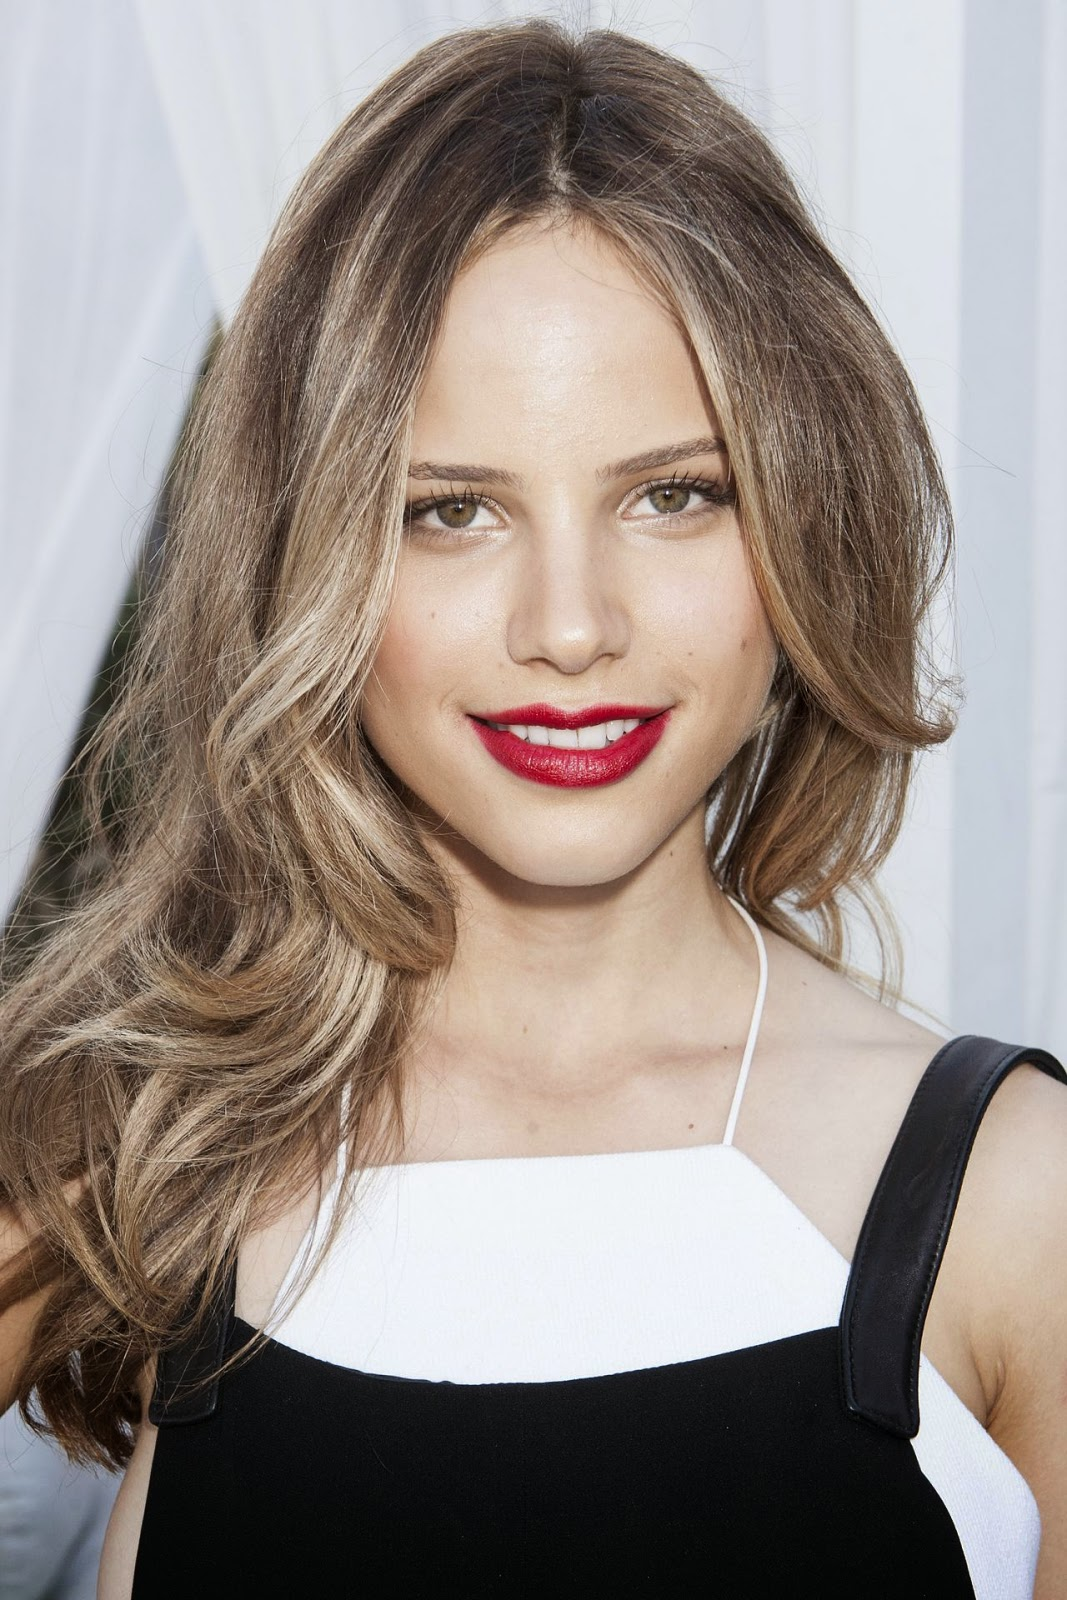 Halston Sage Beautiful HD Wallpaper Free